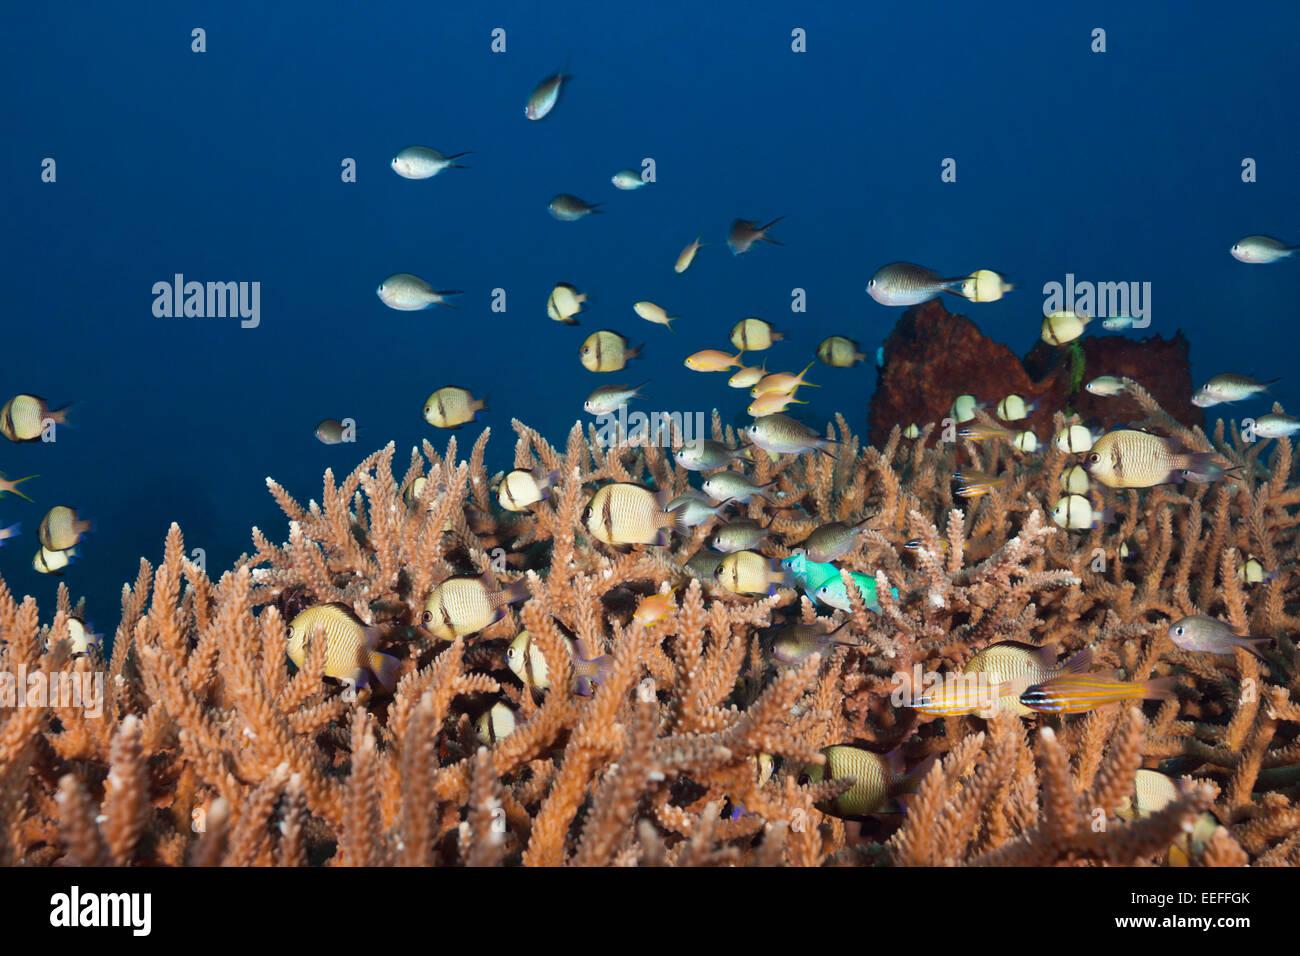 Various Coralfishes over Branching Corals, Tanimbar Islands, Moluccas, Indonesia - Stock Image